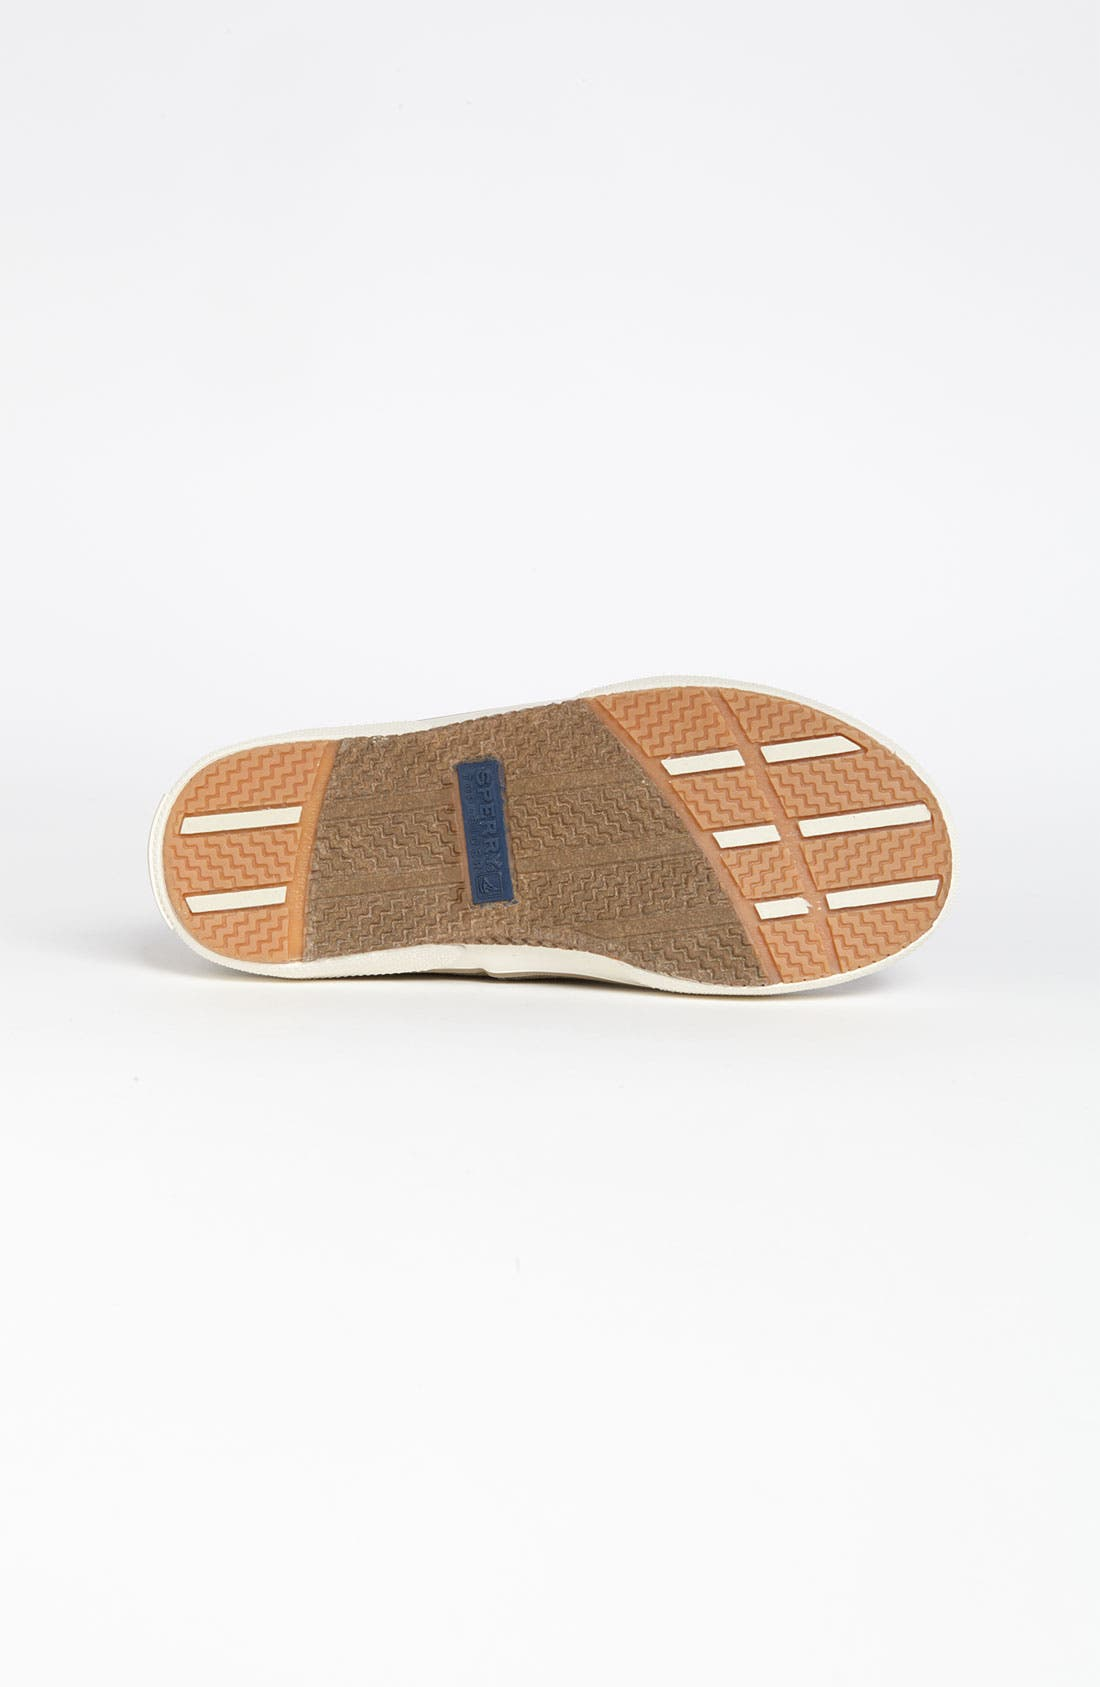 Alternate Image 4  - Sperry Top-Sider® 'Halyard' Boat Shoe (Walker, Toddler, Little Kid & Big Kid)